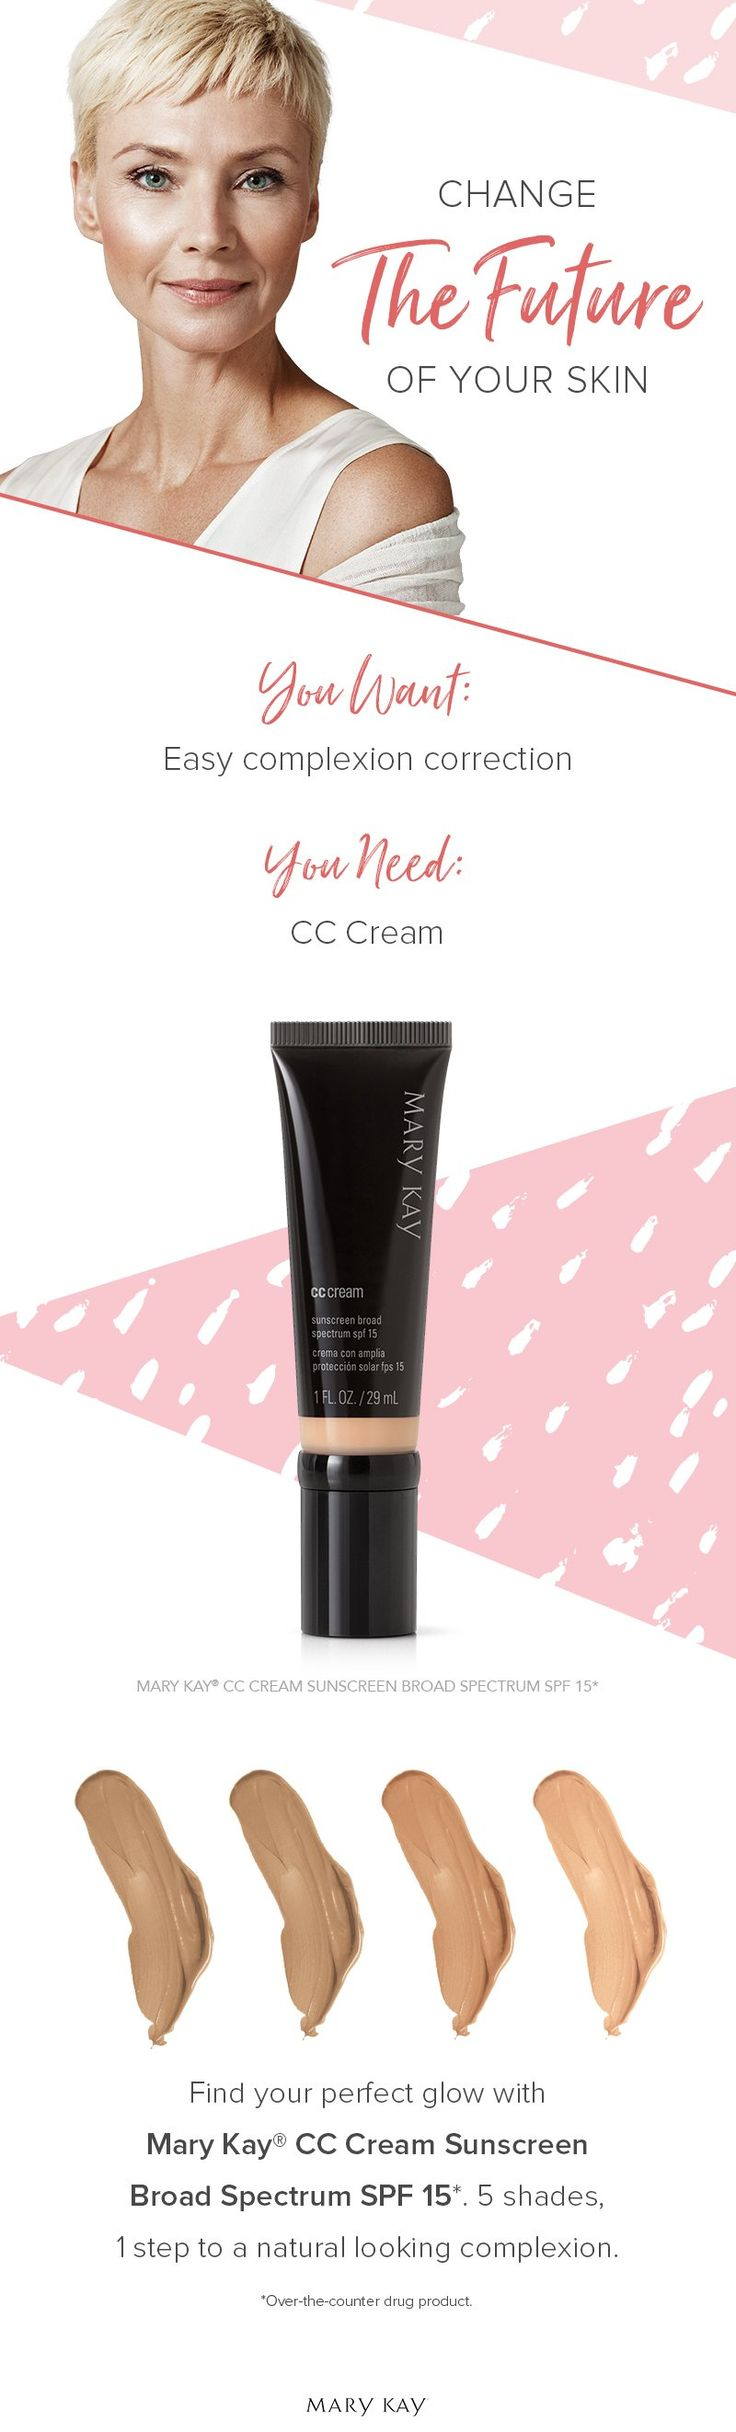 Look luminous today and tomorrow! Mary Kay® CC Cream instantly diminishes the look of blemishes and redness, while SPF and other skin-loving ingredients protect against future damage.